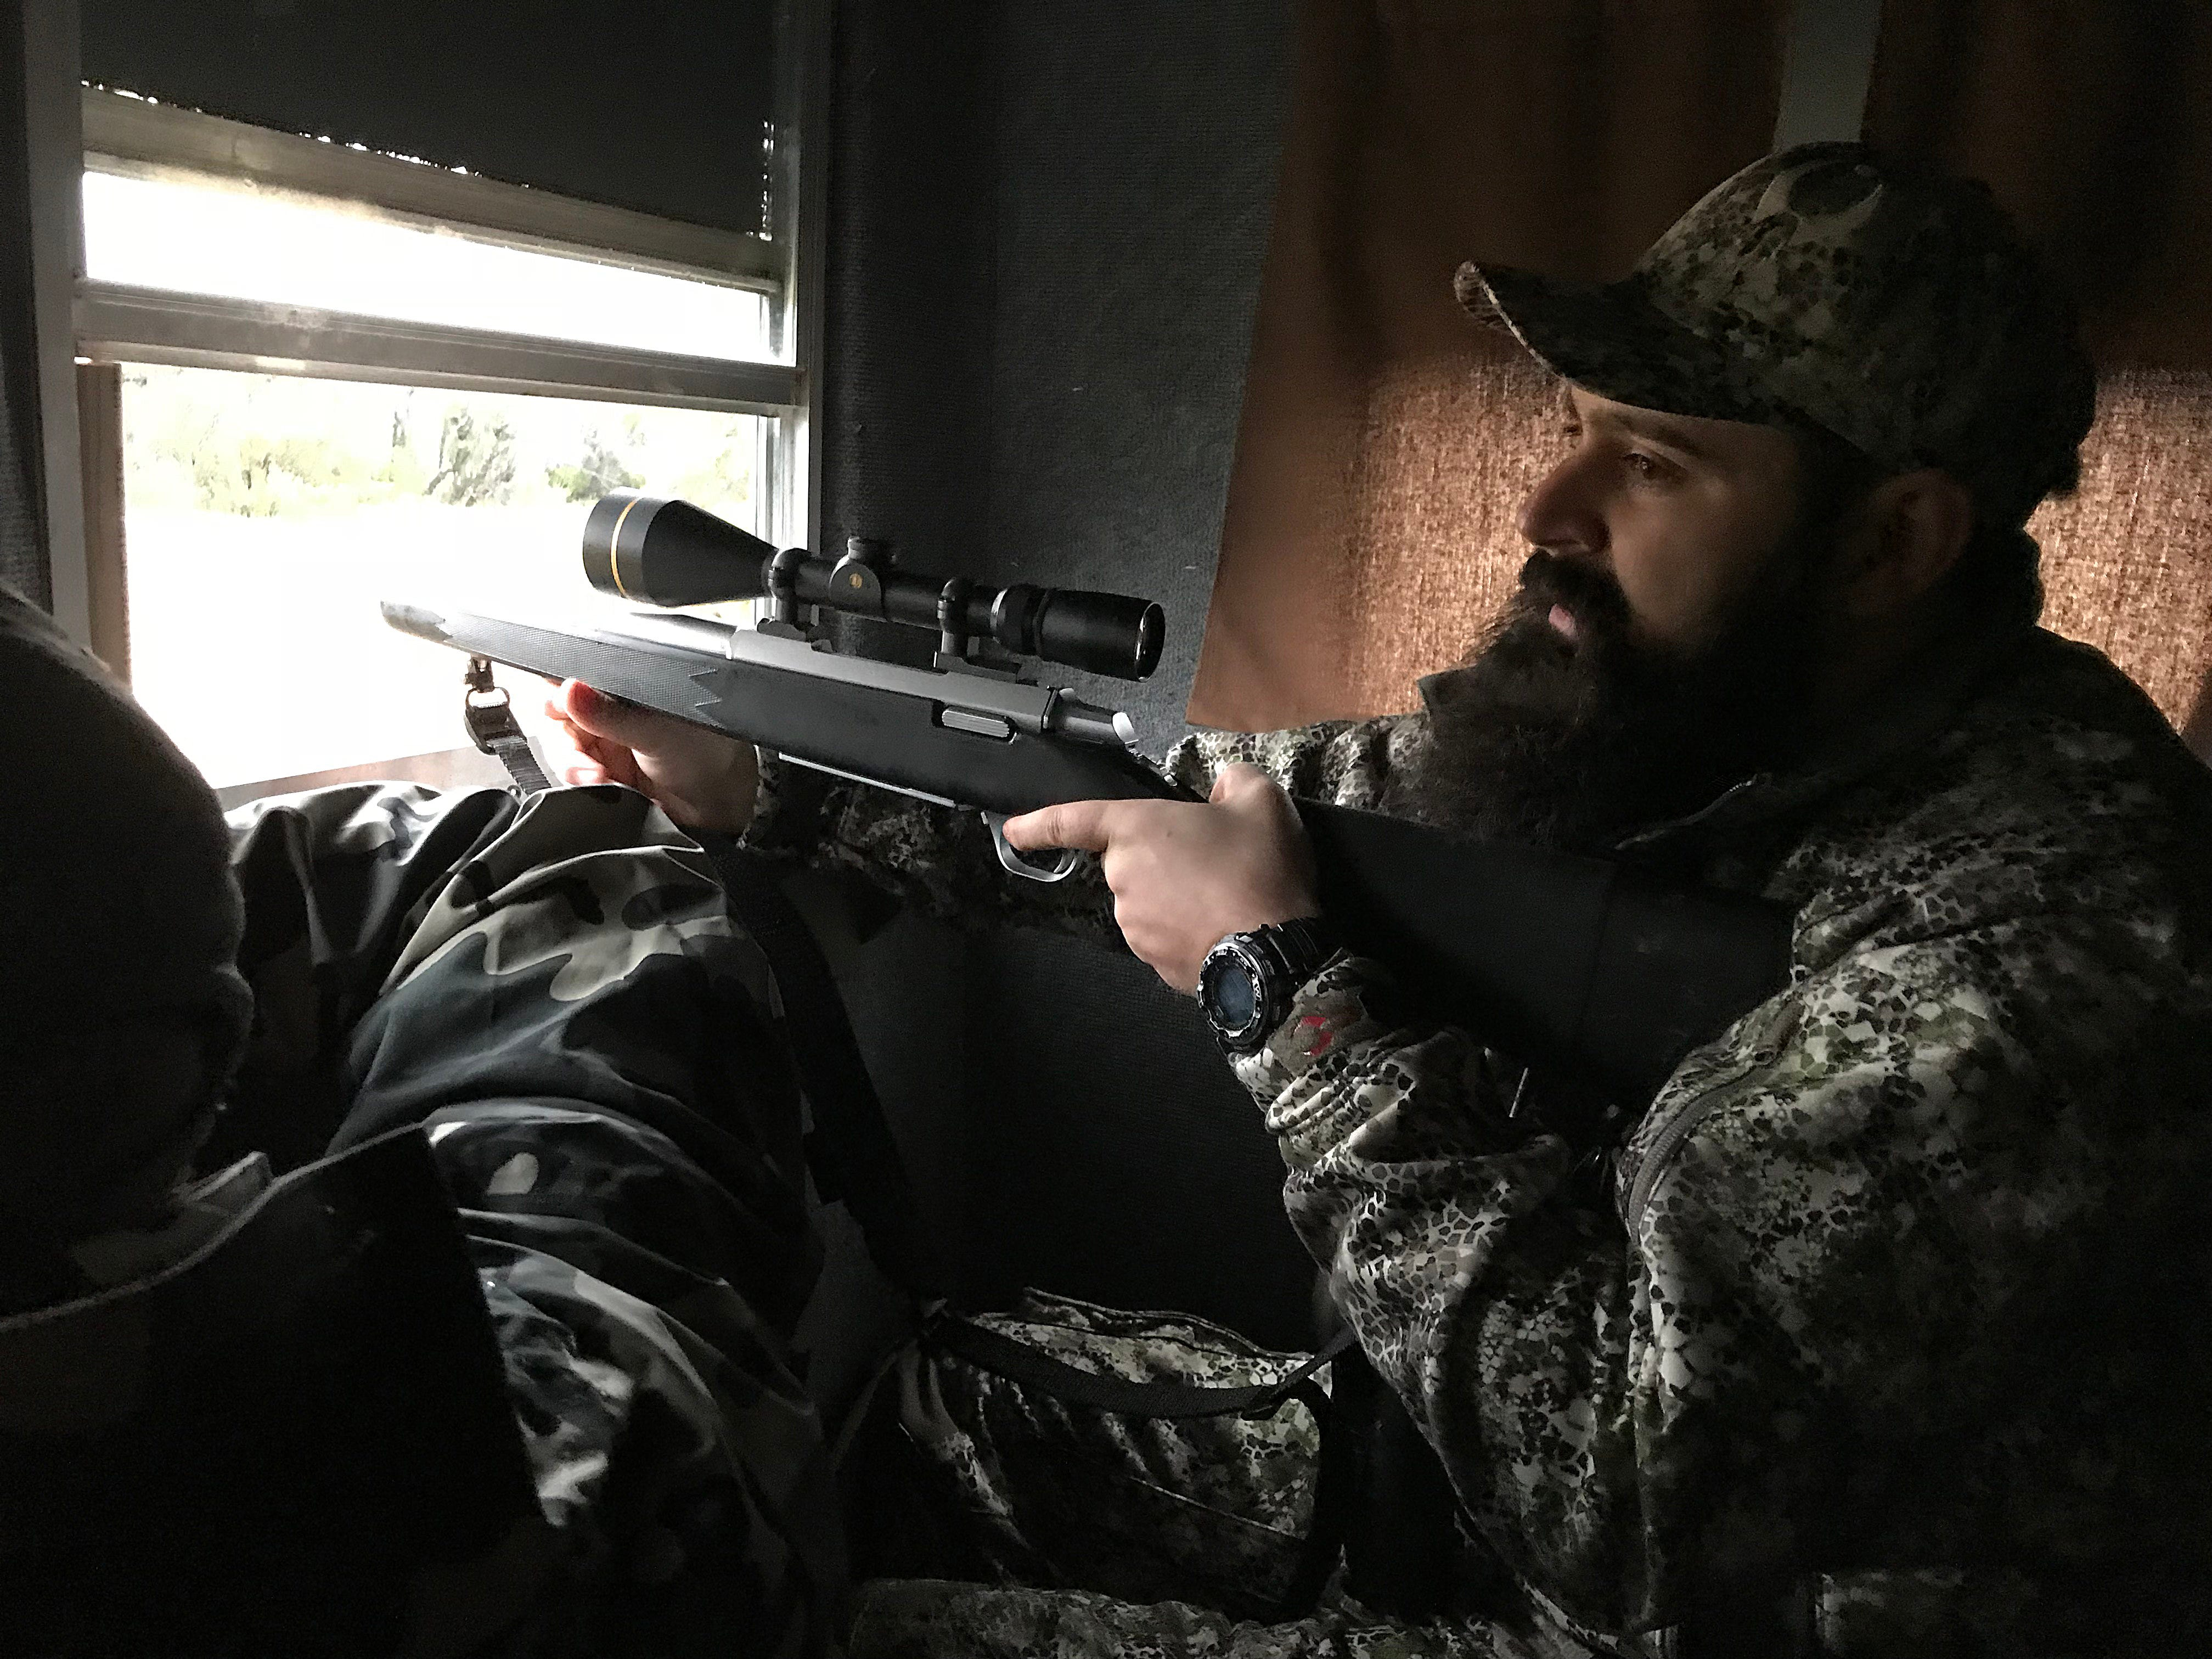 Joseph Lewis listens to directions from his guide Ryan Dupriest during the annual deer hunt in Christoval Friday, Dec. 7, 2018 sponsored by San Angelo Support for Veterans and Lone Star Warriors Outdoors.